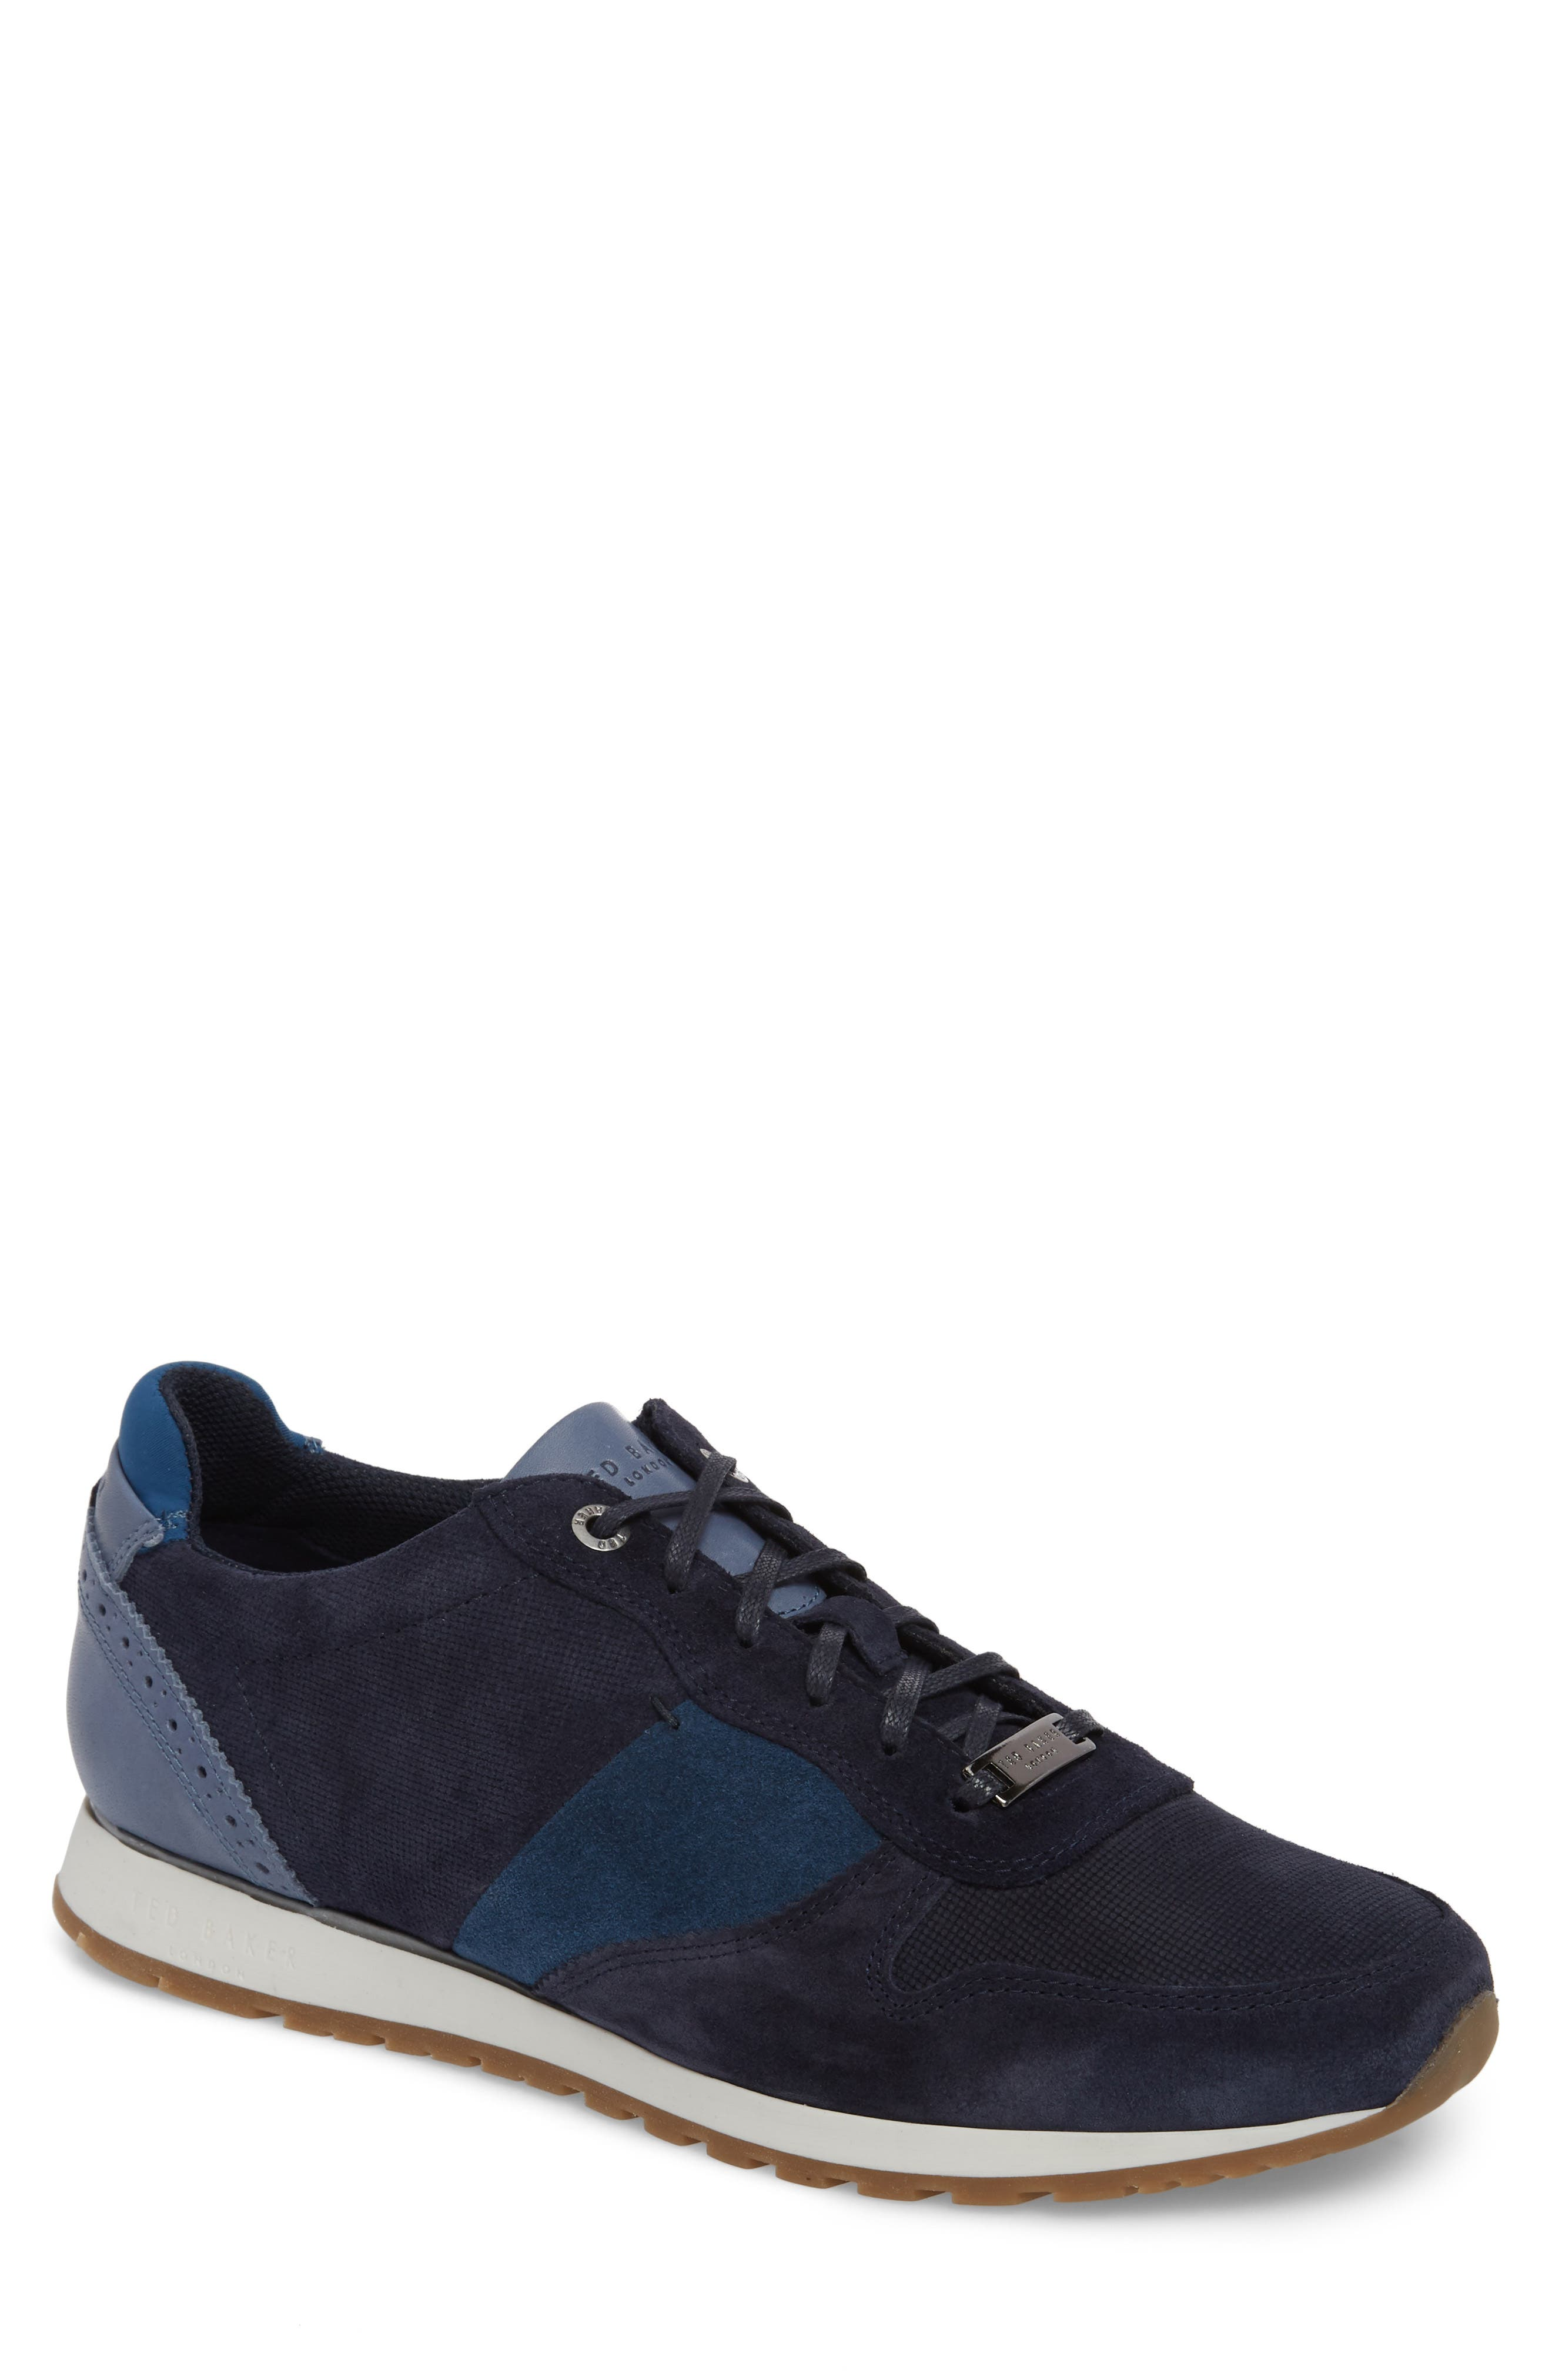 Shindls Low Top Sneaker,                         Main,                         color, BLUE LEATHER/ SUEDE